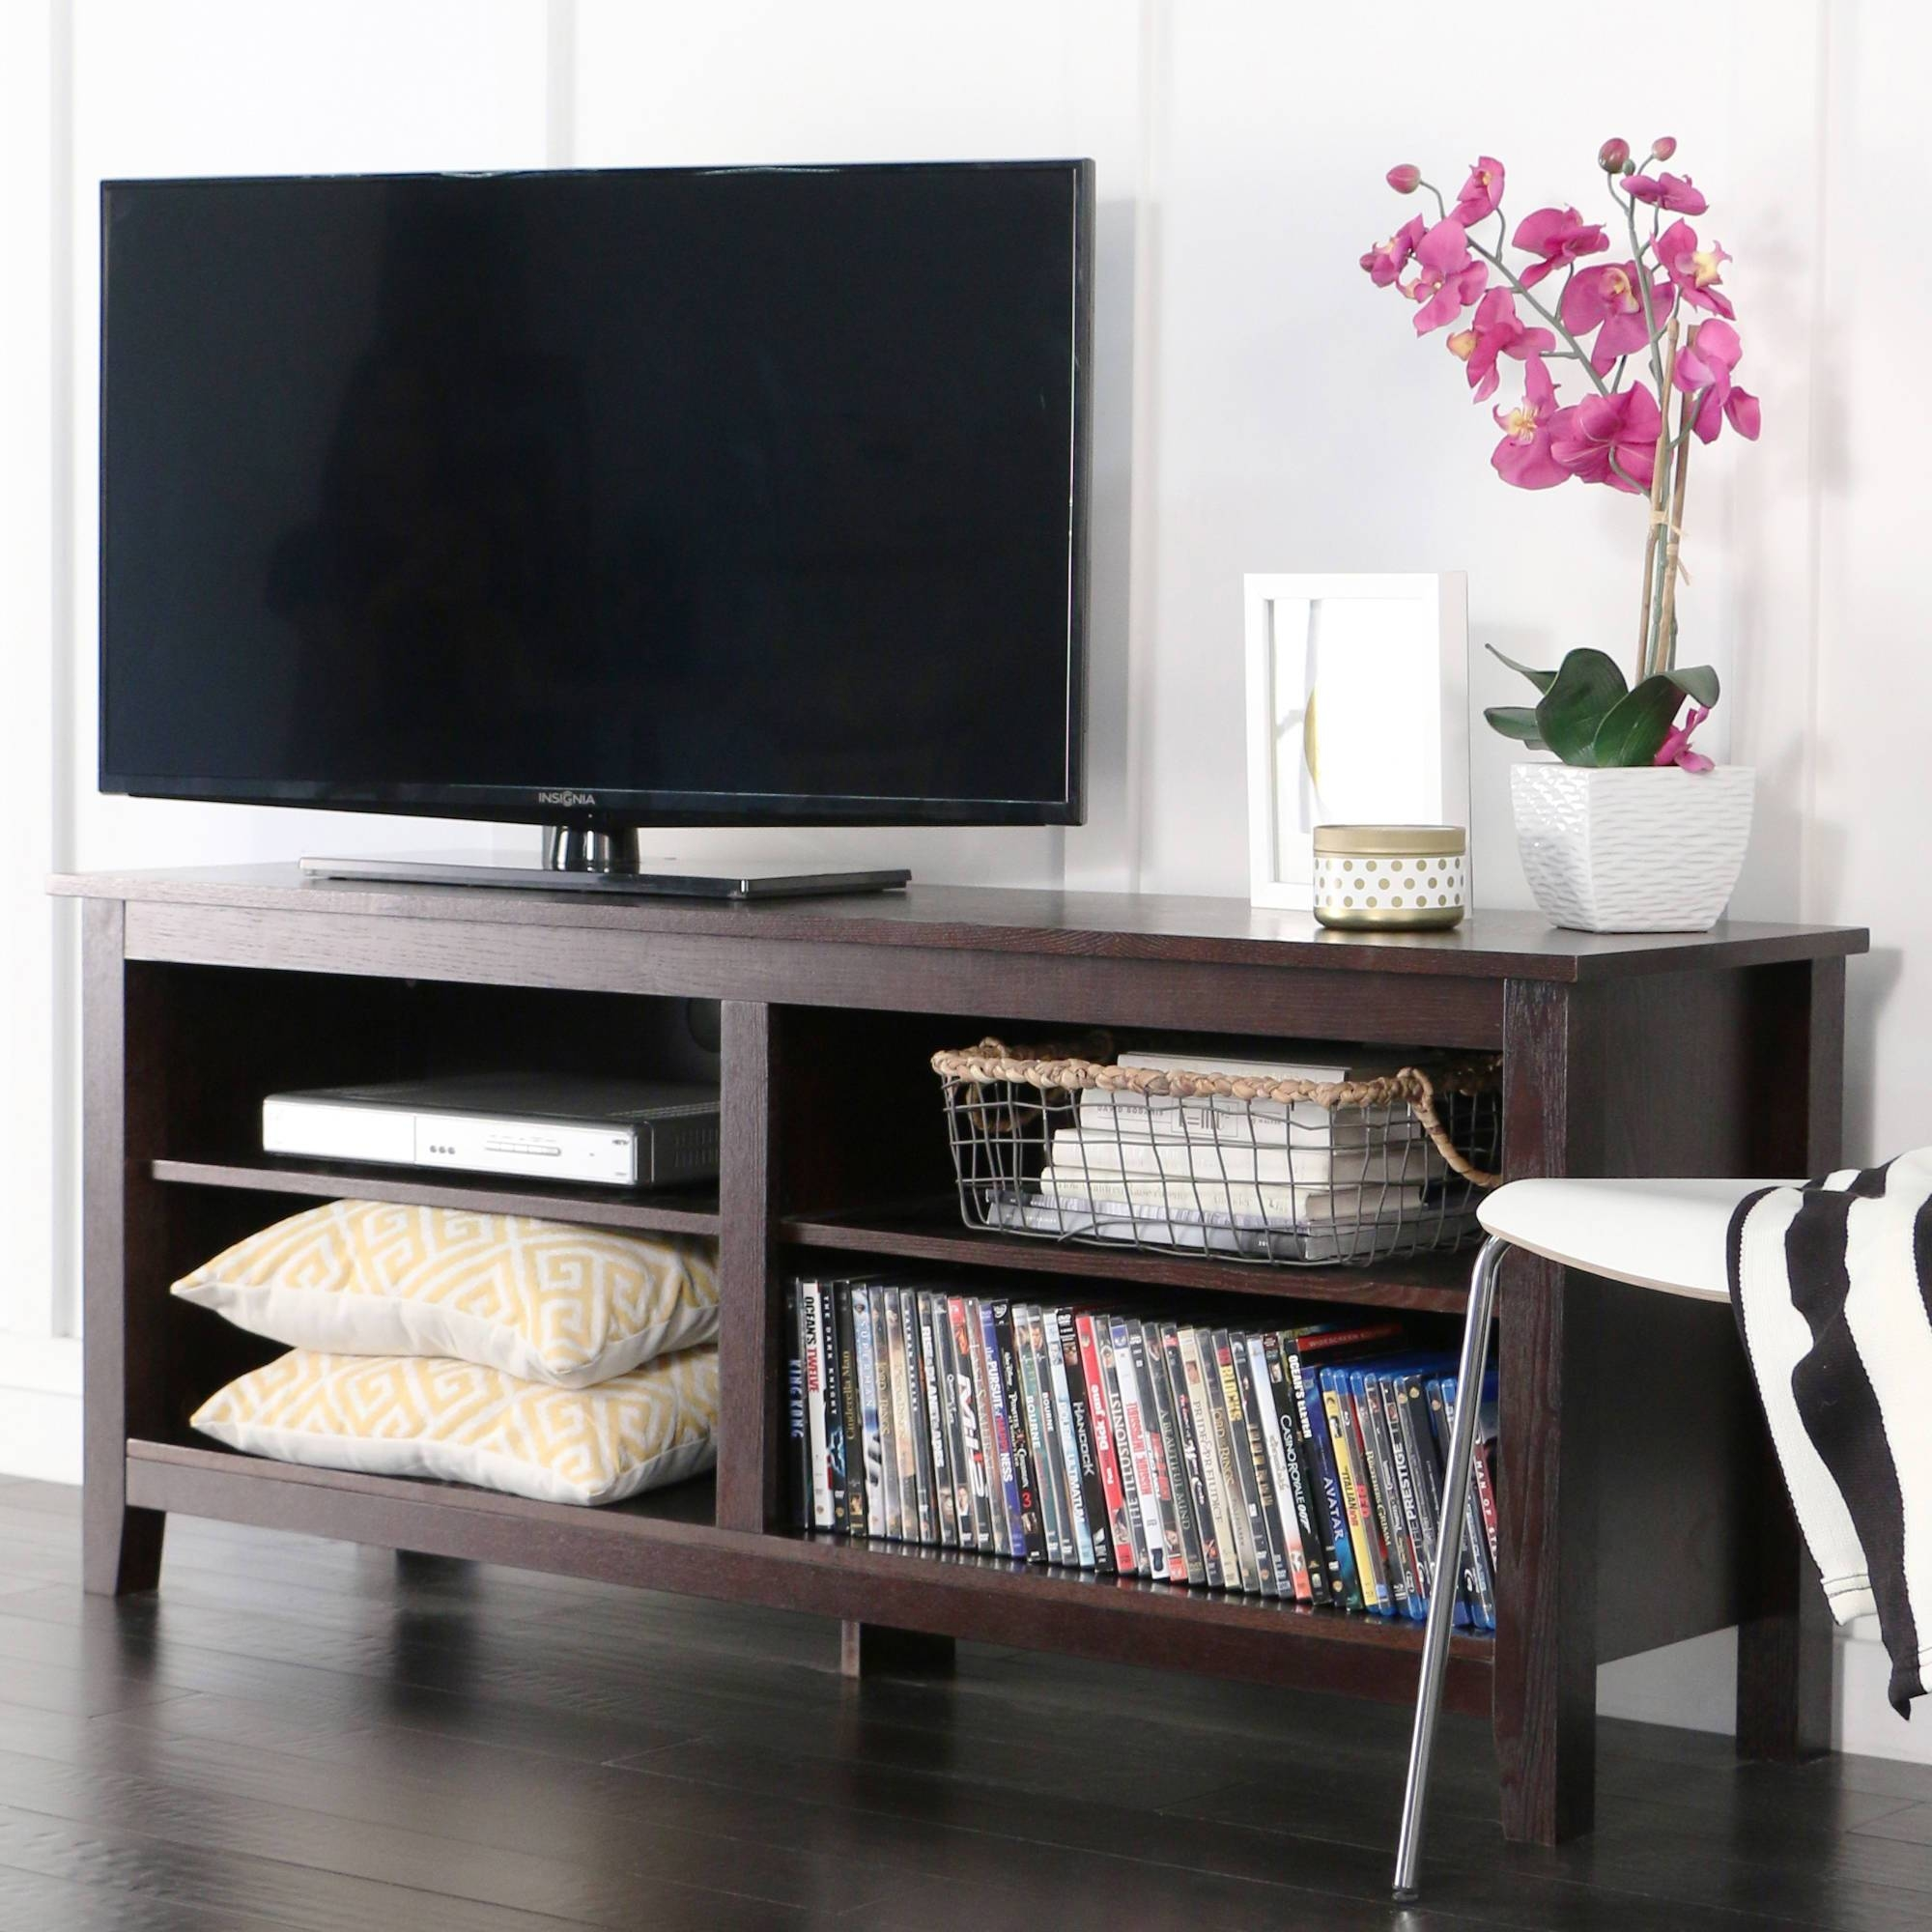 "Wood Corner Tv Fireplace Tv Stand For Tvs Up To 52"", Multiple regarding Retro Corner Tv Stands (Image 15 of 15)"